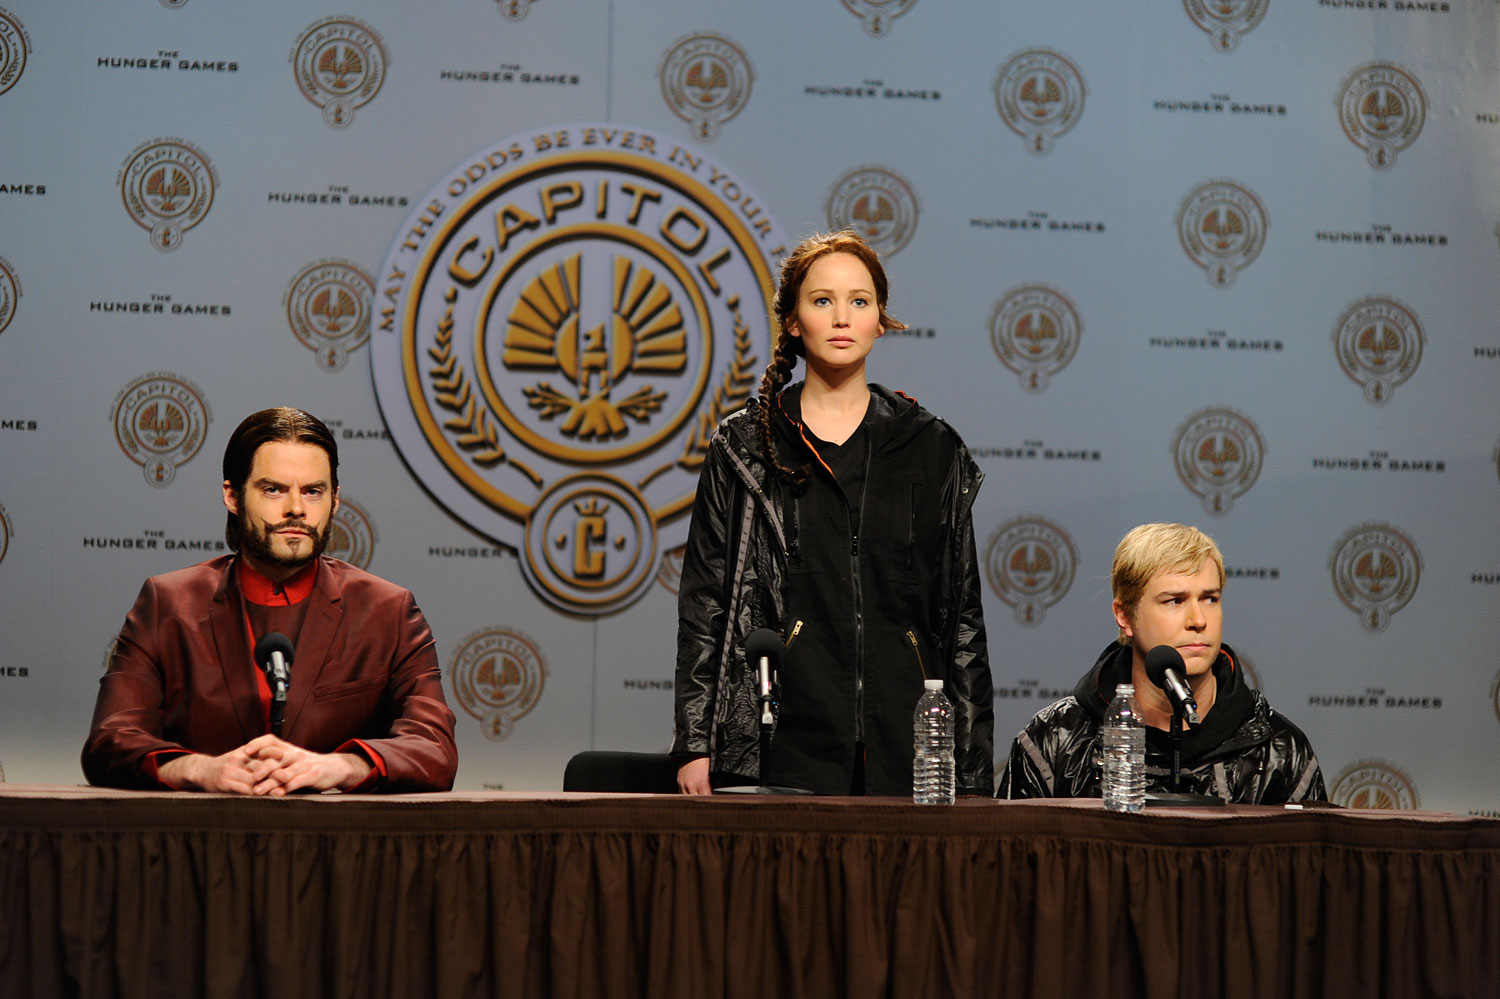 Lawrence had the honor of hosting Saturday Night Live, where she lampooned her role as Katniss Everdeen in The Hunger Games.